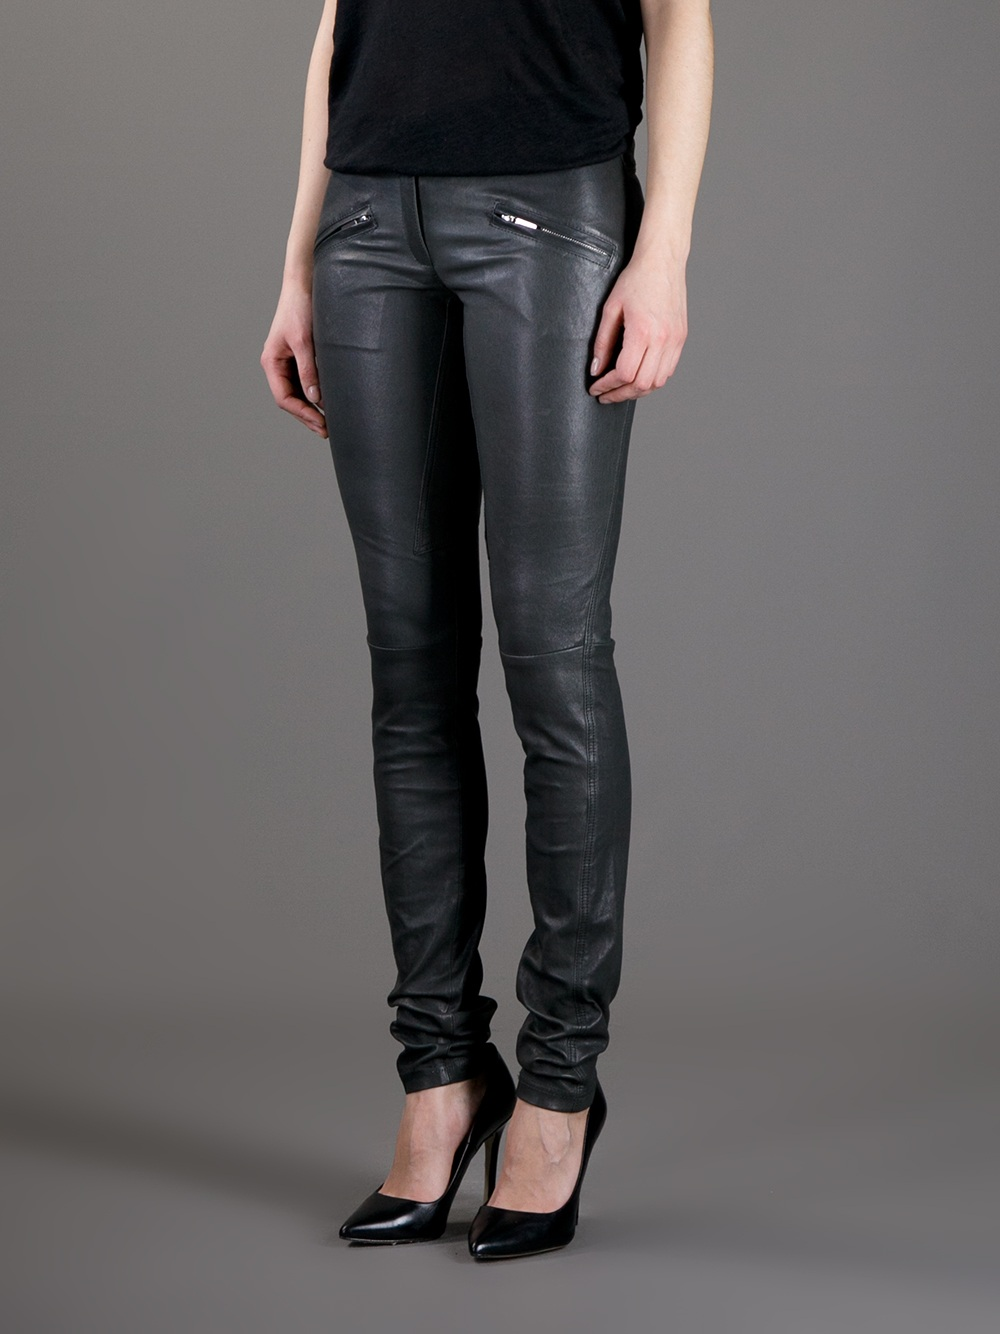 skinny trousers - Black Barbara Bui 5K6xwONG